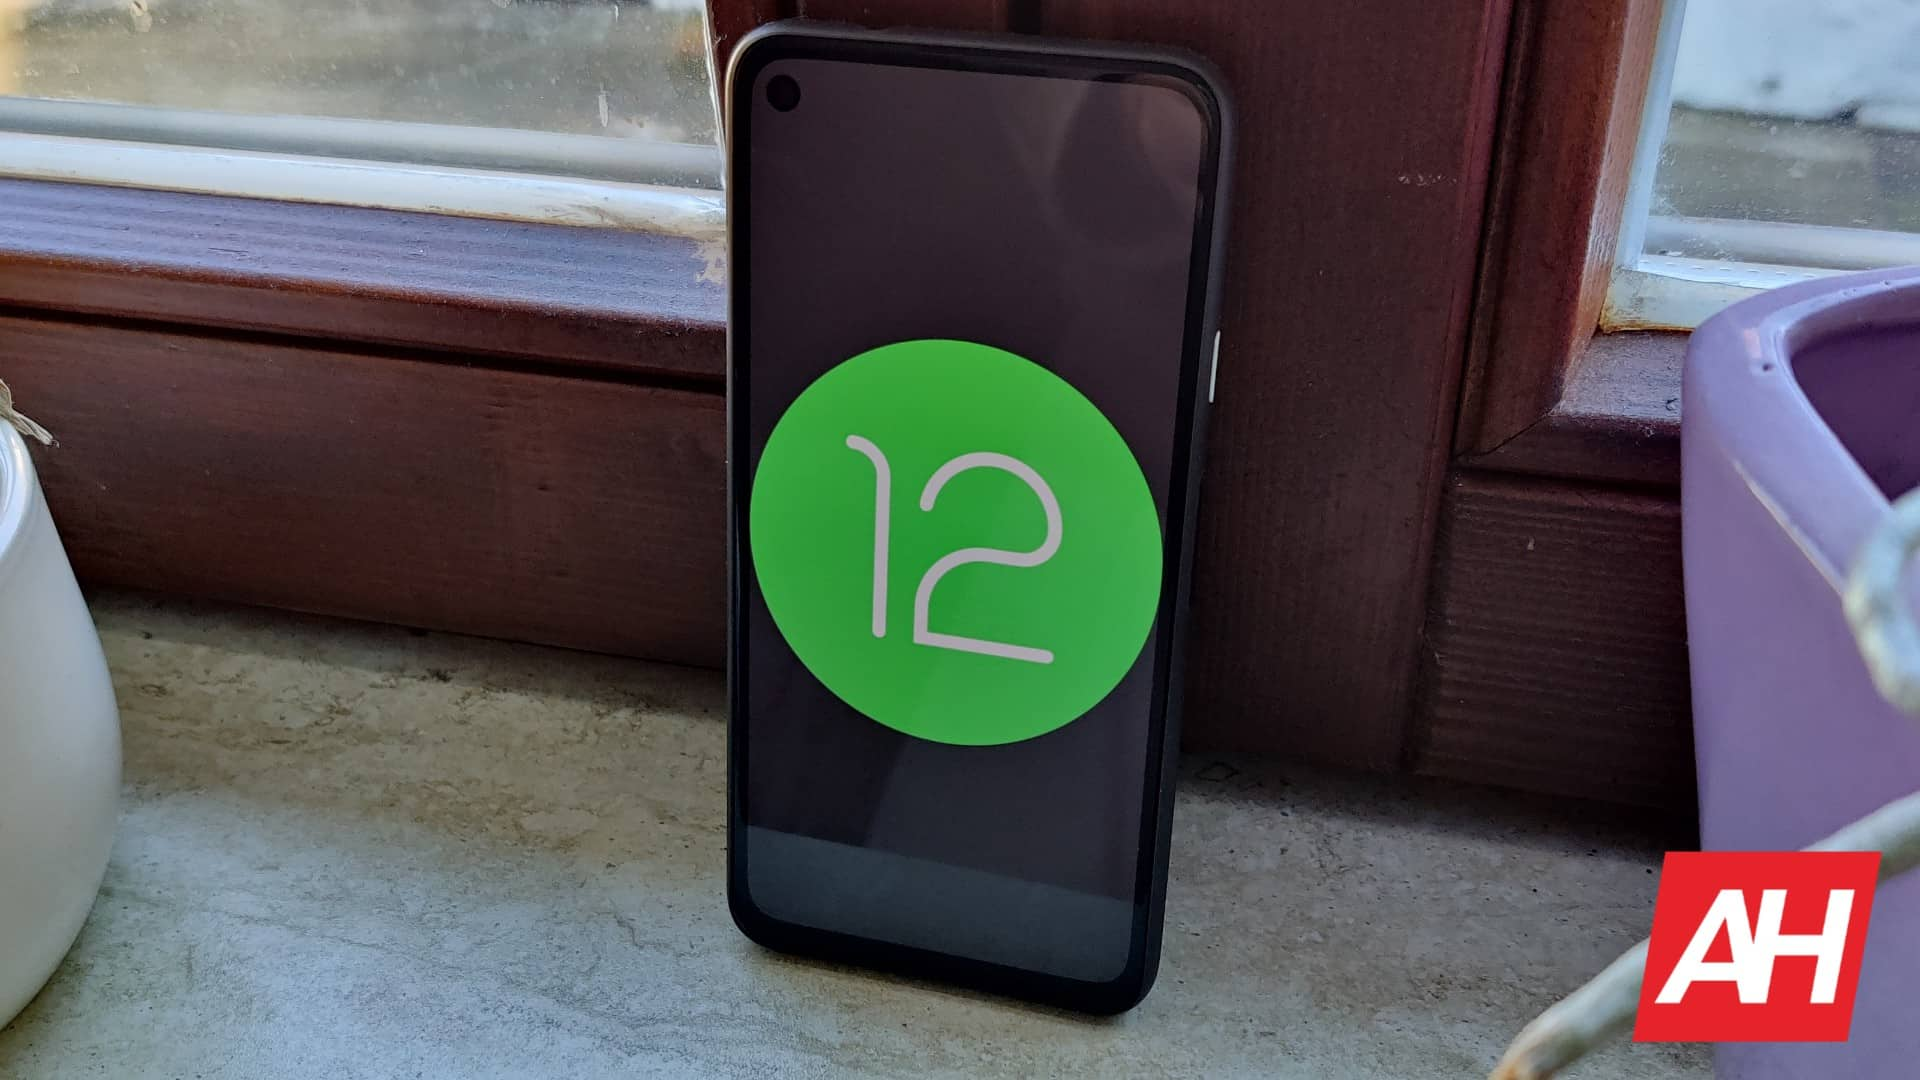 Android 12 Will Bring Yet Another Small Change To Notification Cards